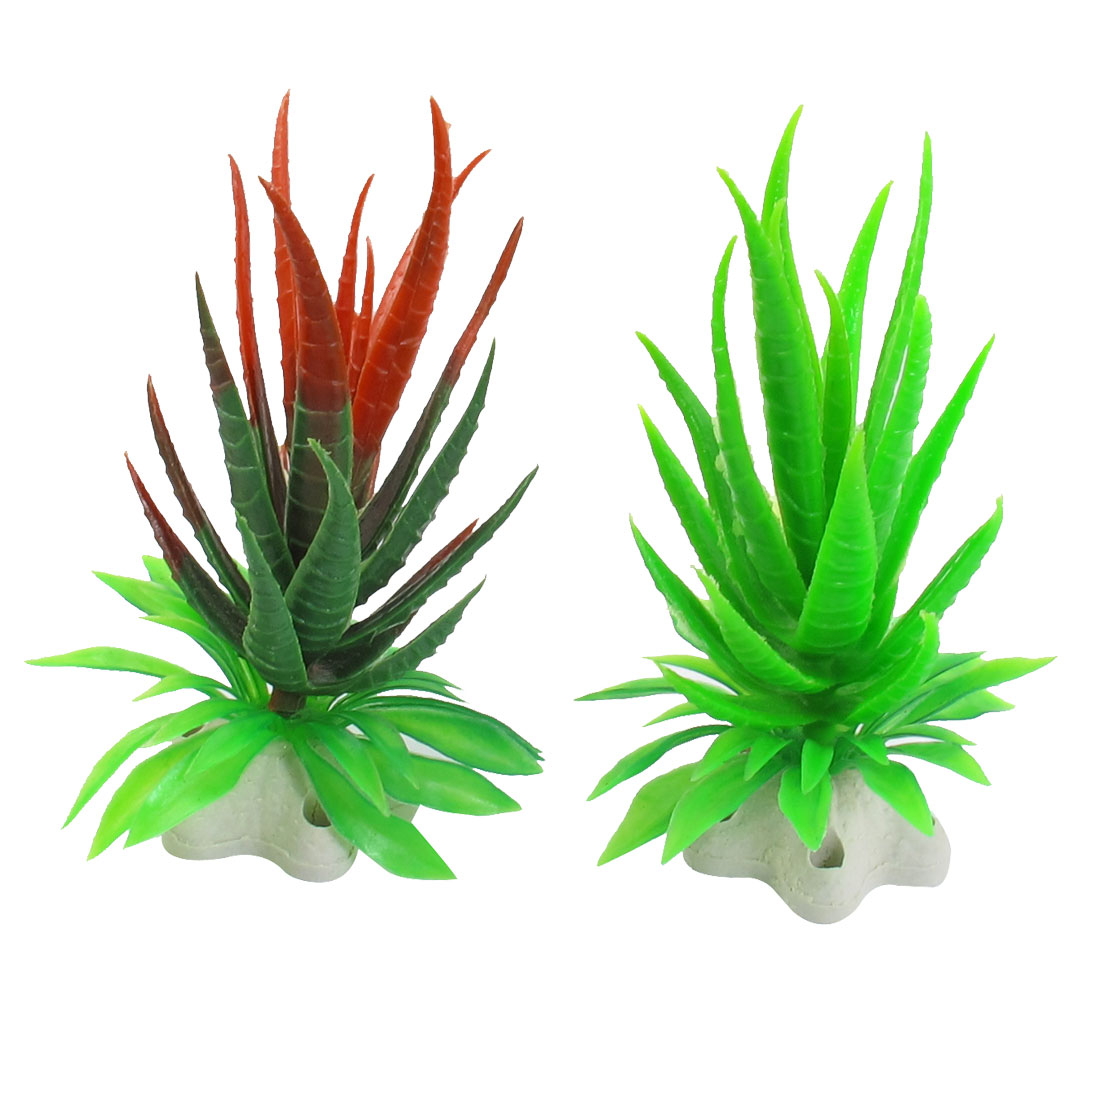 "2 Pcs 4.9"" Hight Assorted Colors Plastic Aquatic Plants for Aquarium Fish Tank"